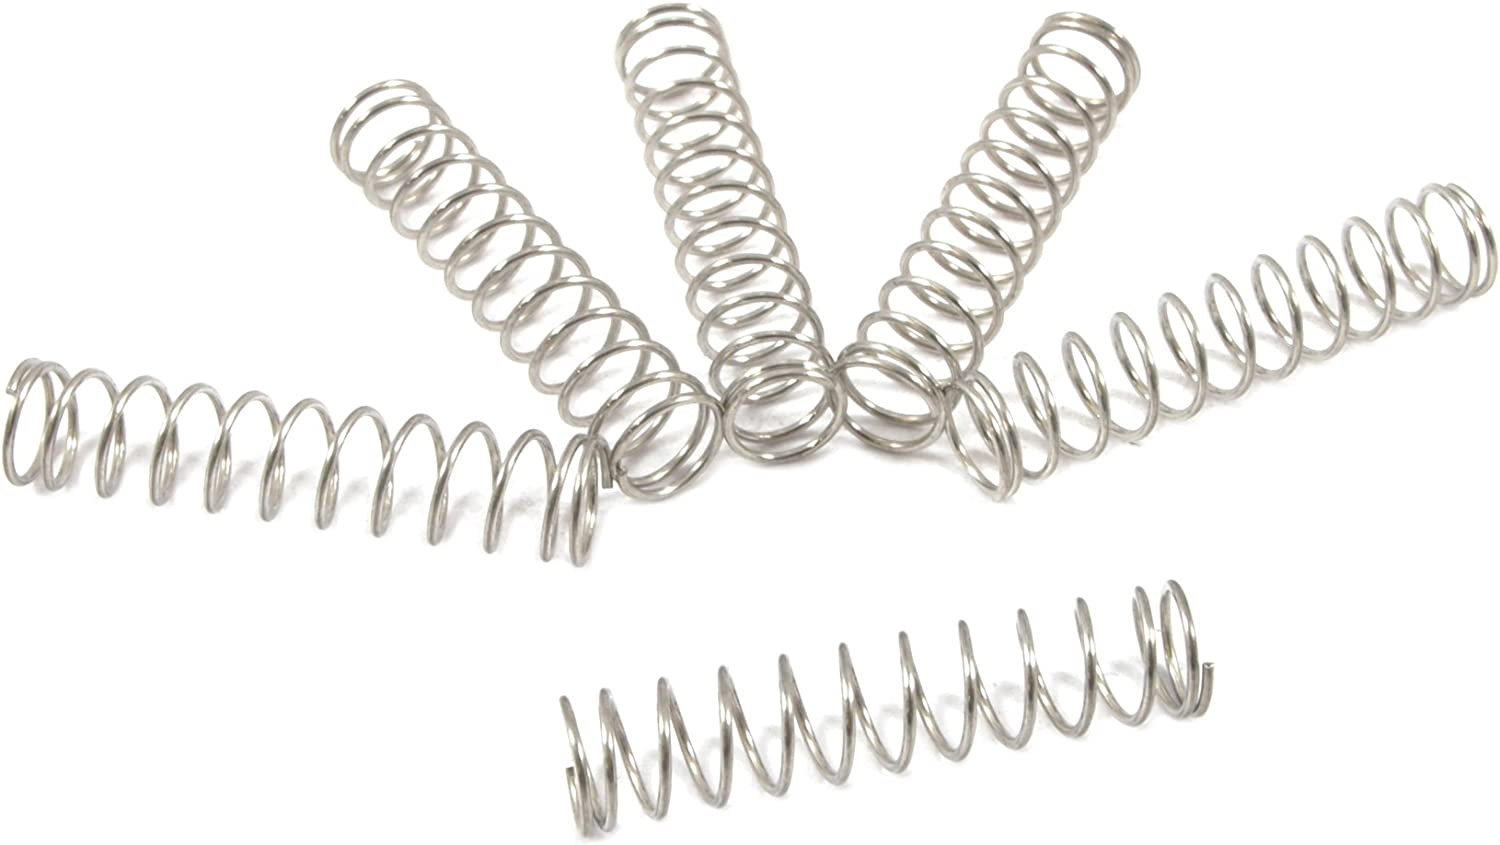 Fine Thread 25-Pack The Hillman Group 330949 1//2-20 x 2-1//2-Inch Socket Head Cap Screw